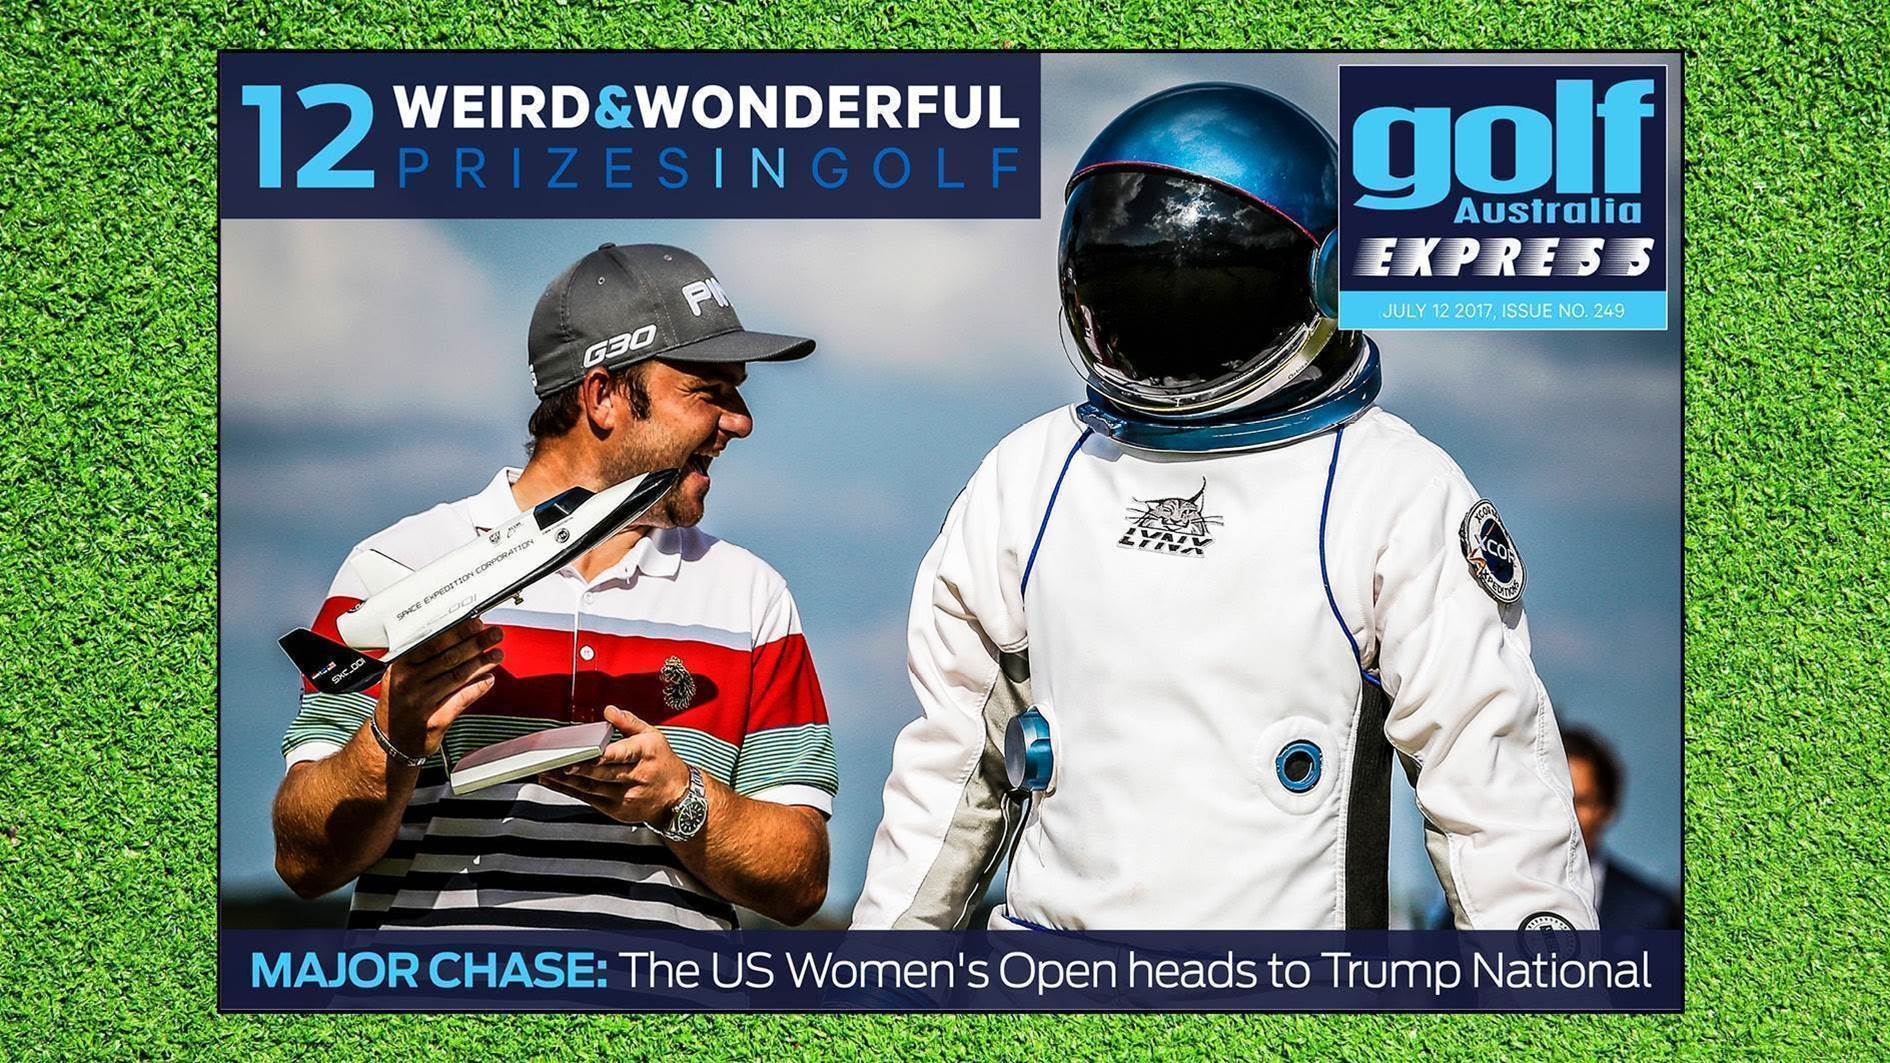 GA Express #249: Golf's weirdest & most wonderful prizes